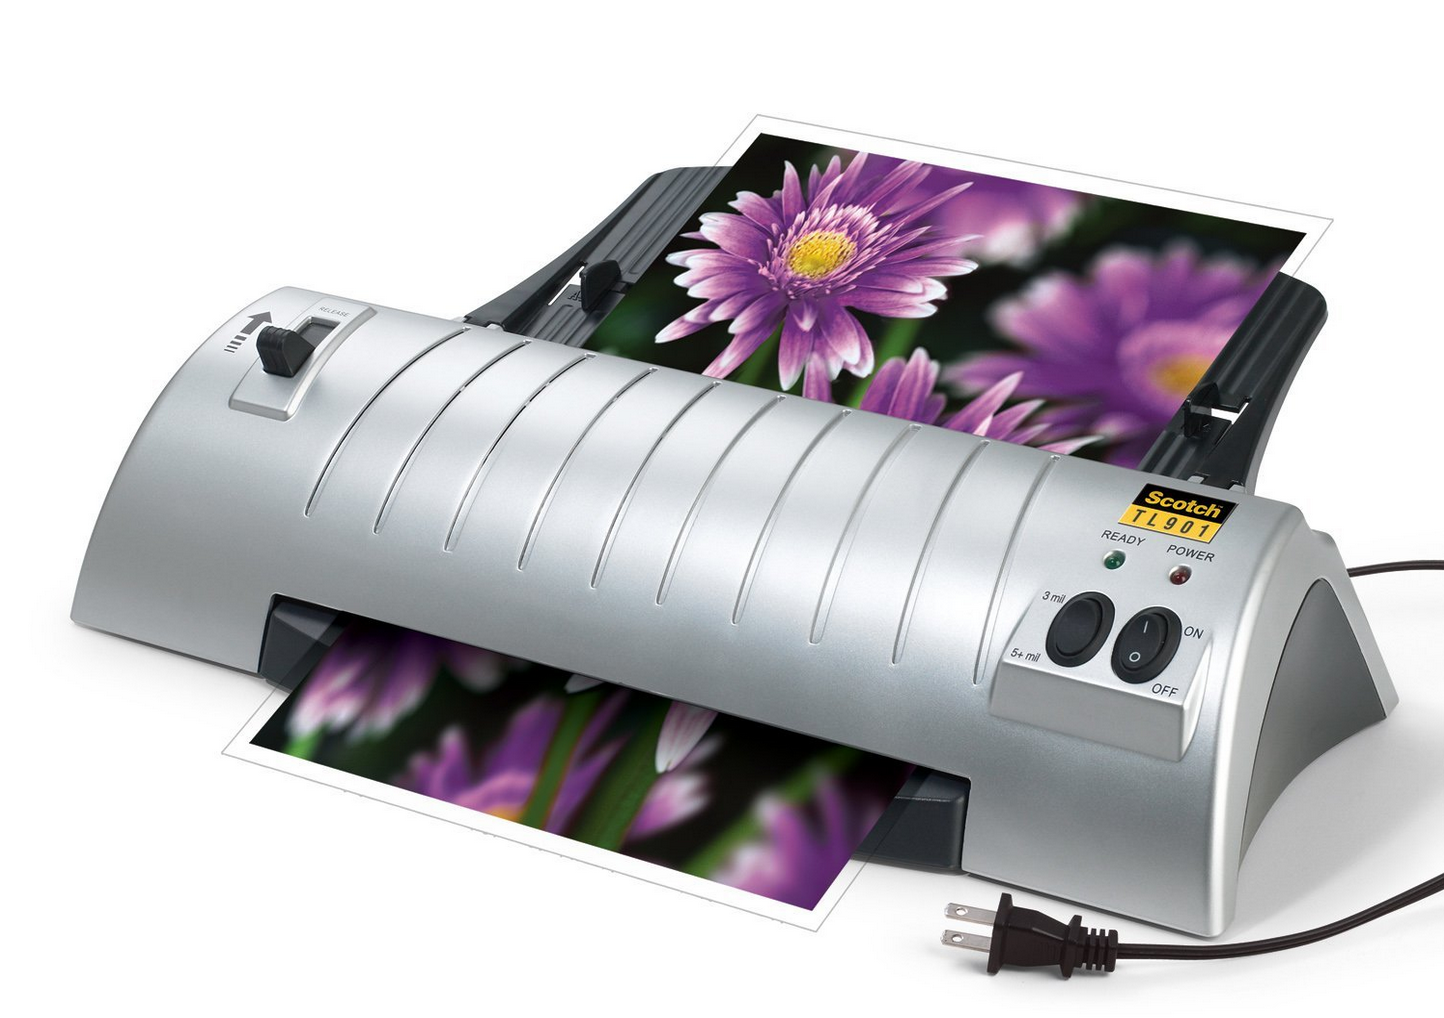 Scotch Thermal Laminator Only $16.99 – Lowest Price!